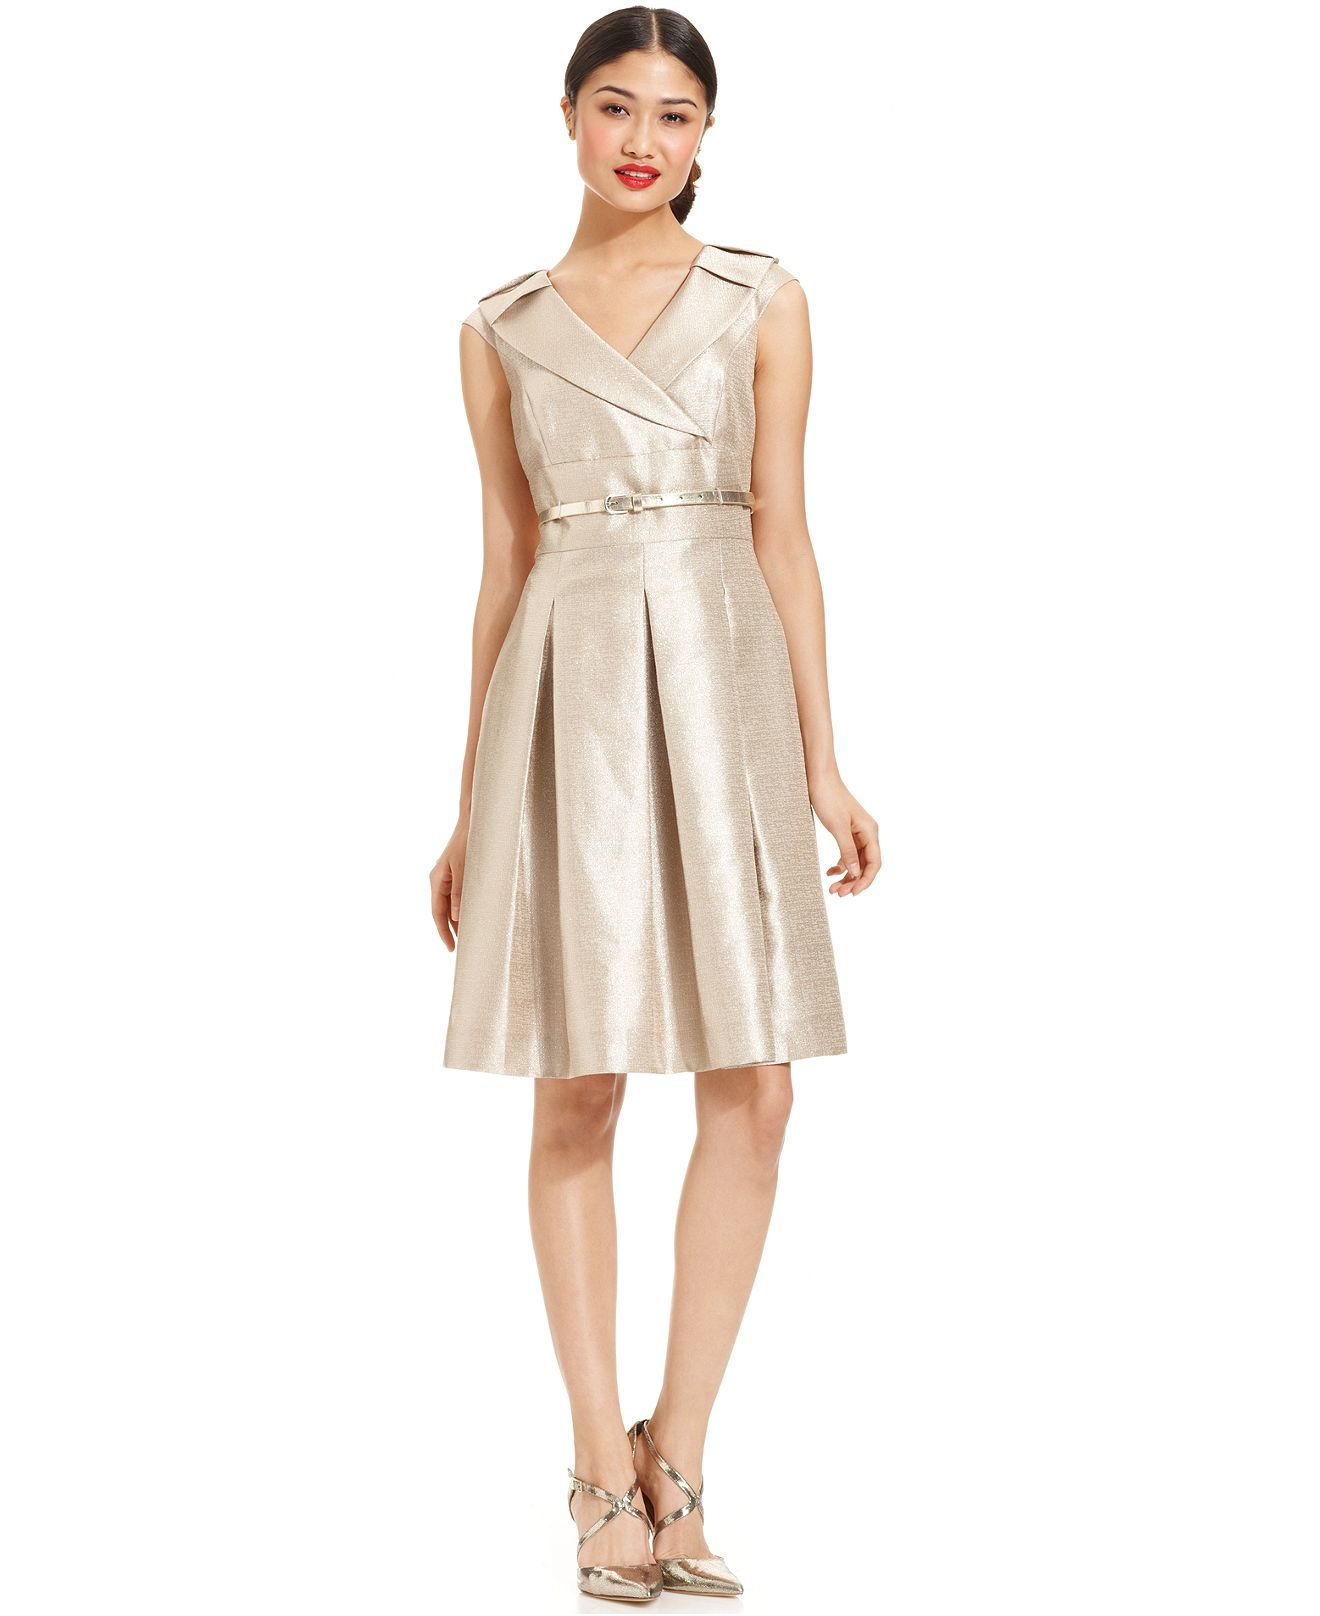 Tahari metallic belted portrait collar dress dresses women tahari metallic belted portrait collar dress dresses women macys ombrellifo Images